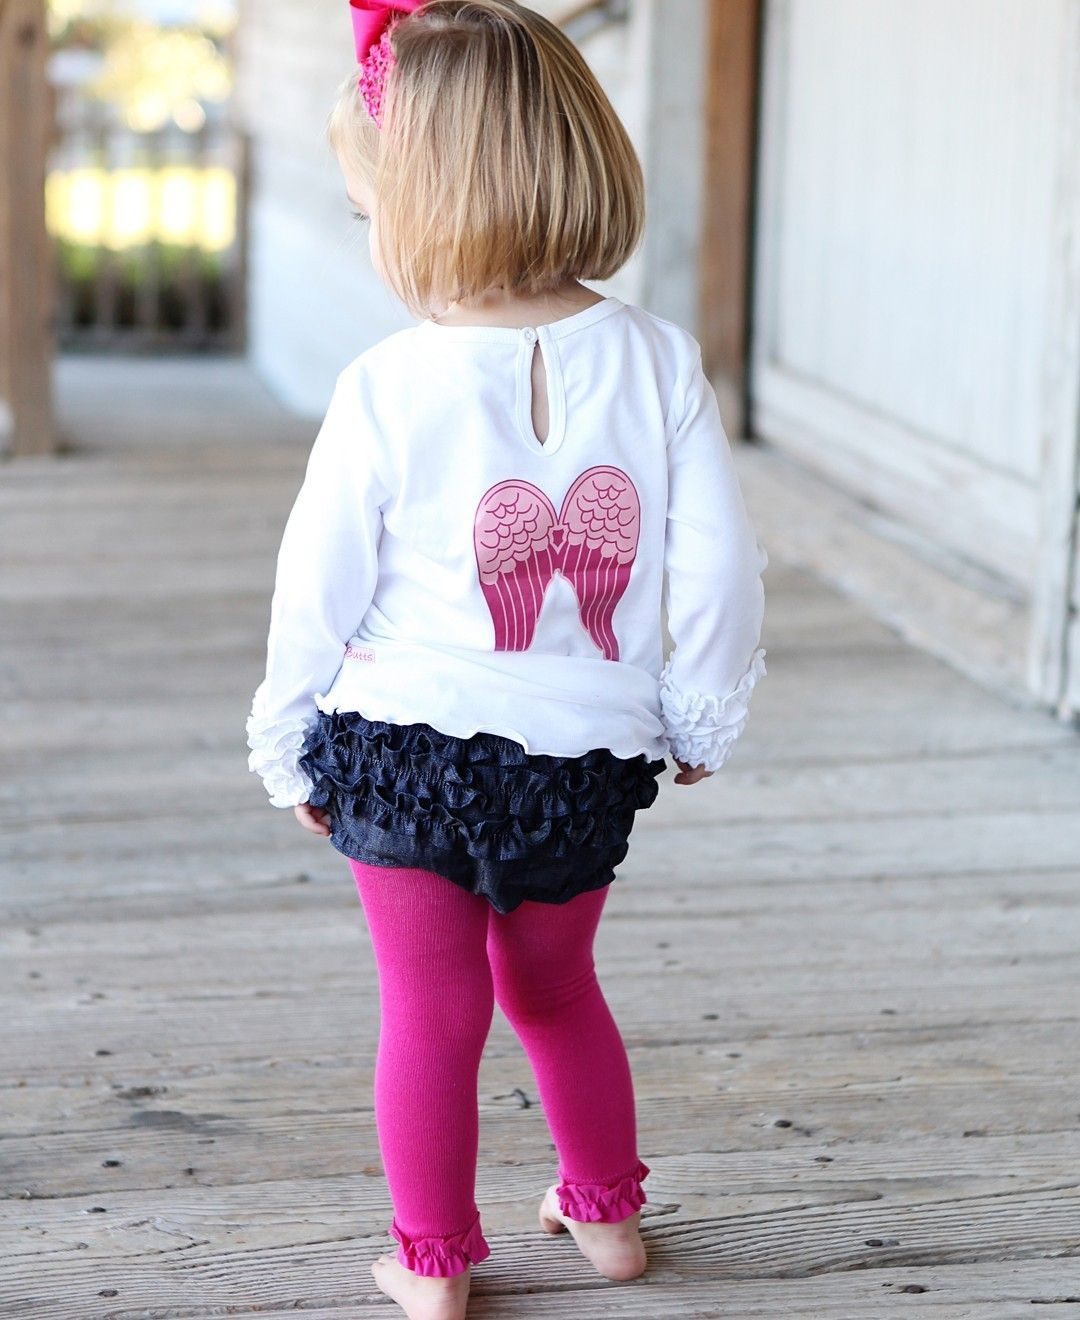 You searched for: baby ruffled tights! Etsy is the home to thousands of handmade, vintage, and one-of-a-kind products and gifts related to your search. No matter what you're looking for or where you are in the world, our global marketplace of sellers can help you find unique and affordable options. Let's get started!